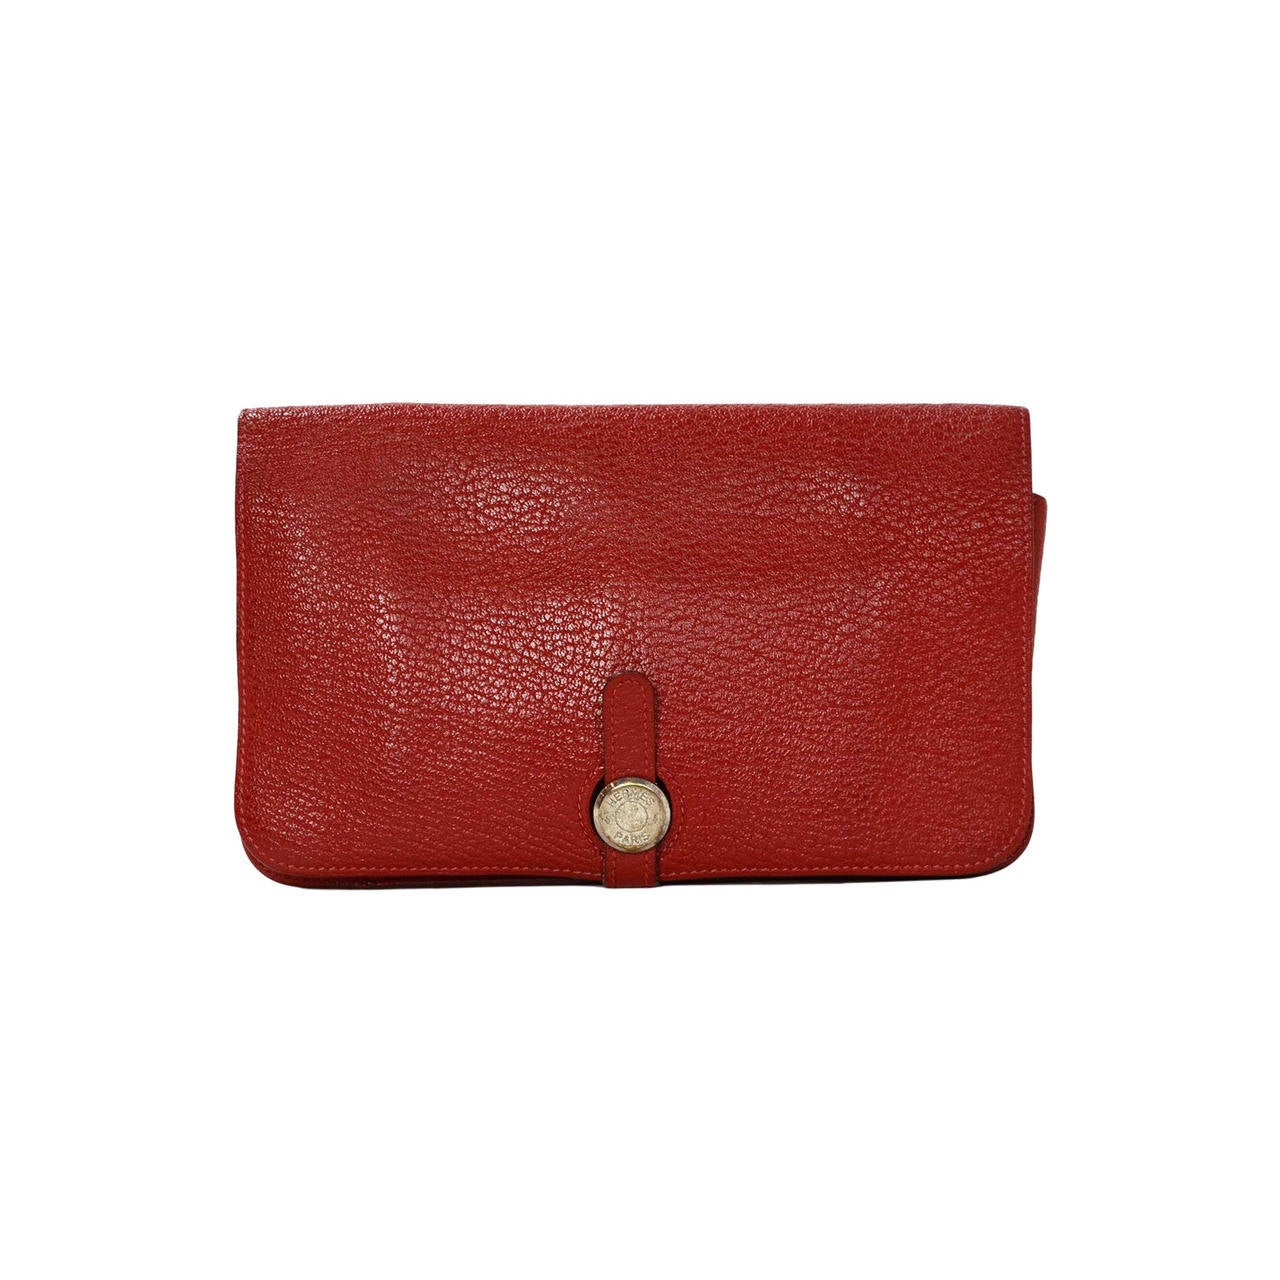 Hermes Red Chevre Leather Dogon Wallet PHW 1